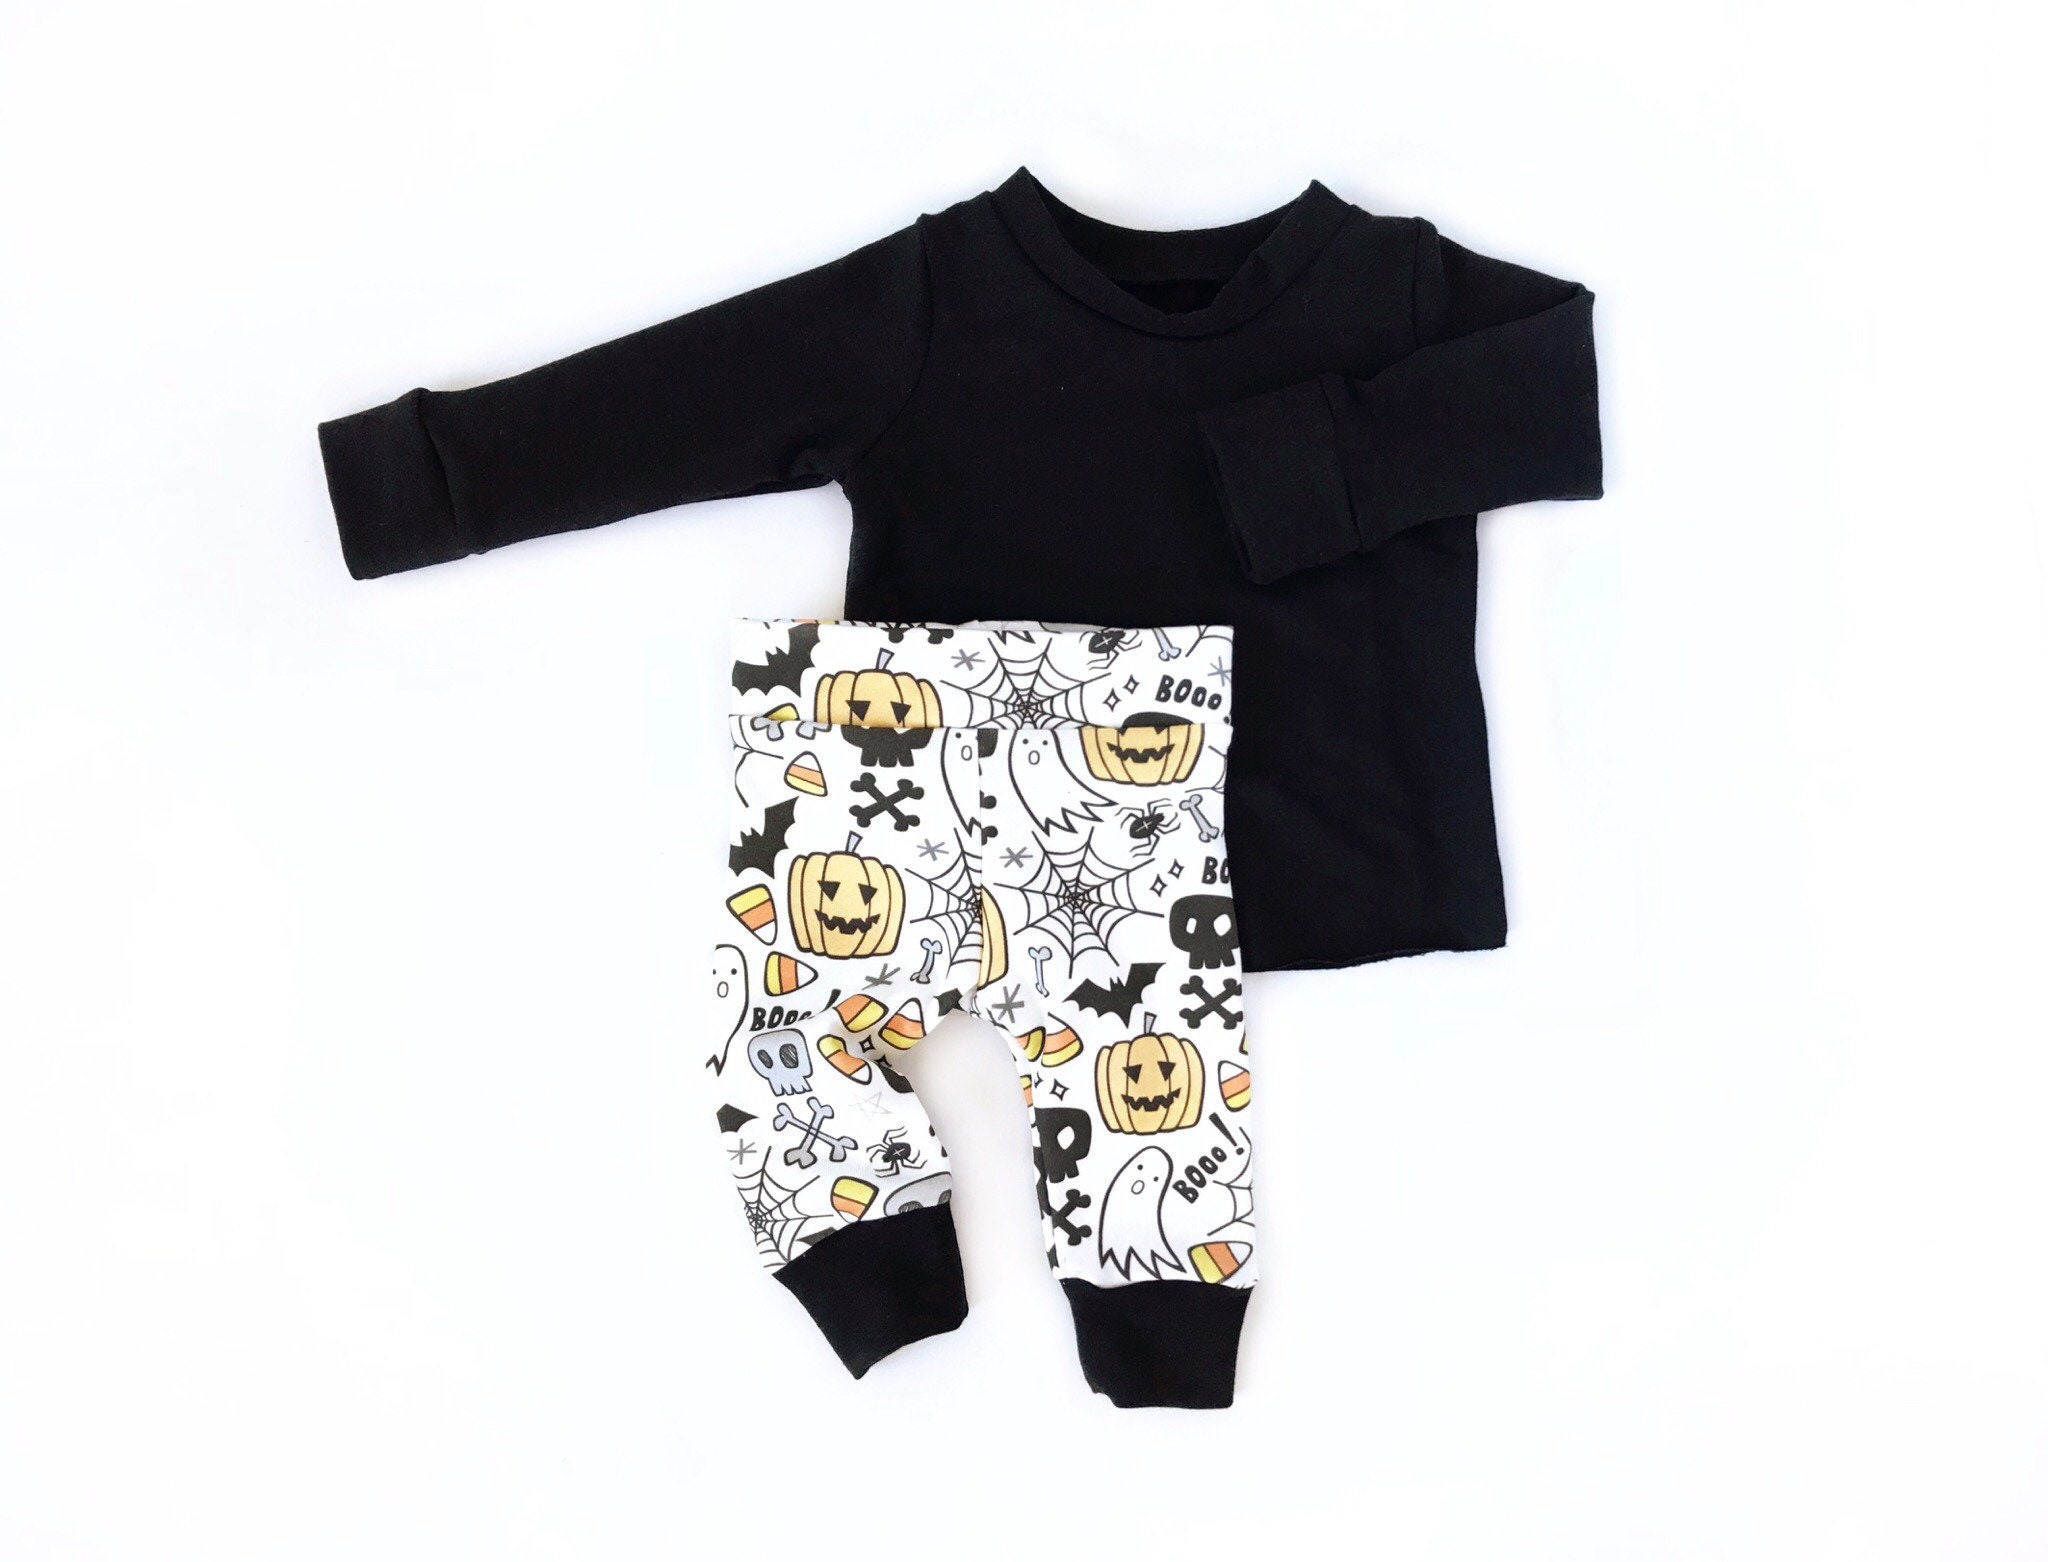 3450996c9d9f Baby Halloween Outfit Toddler Halloween Outfit Halloween